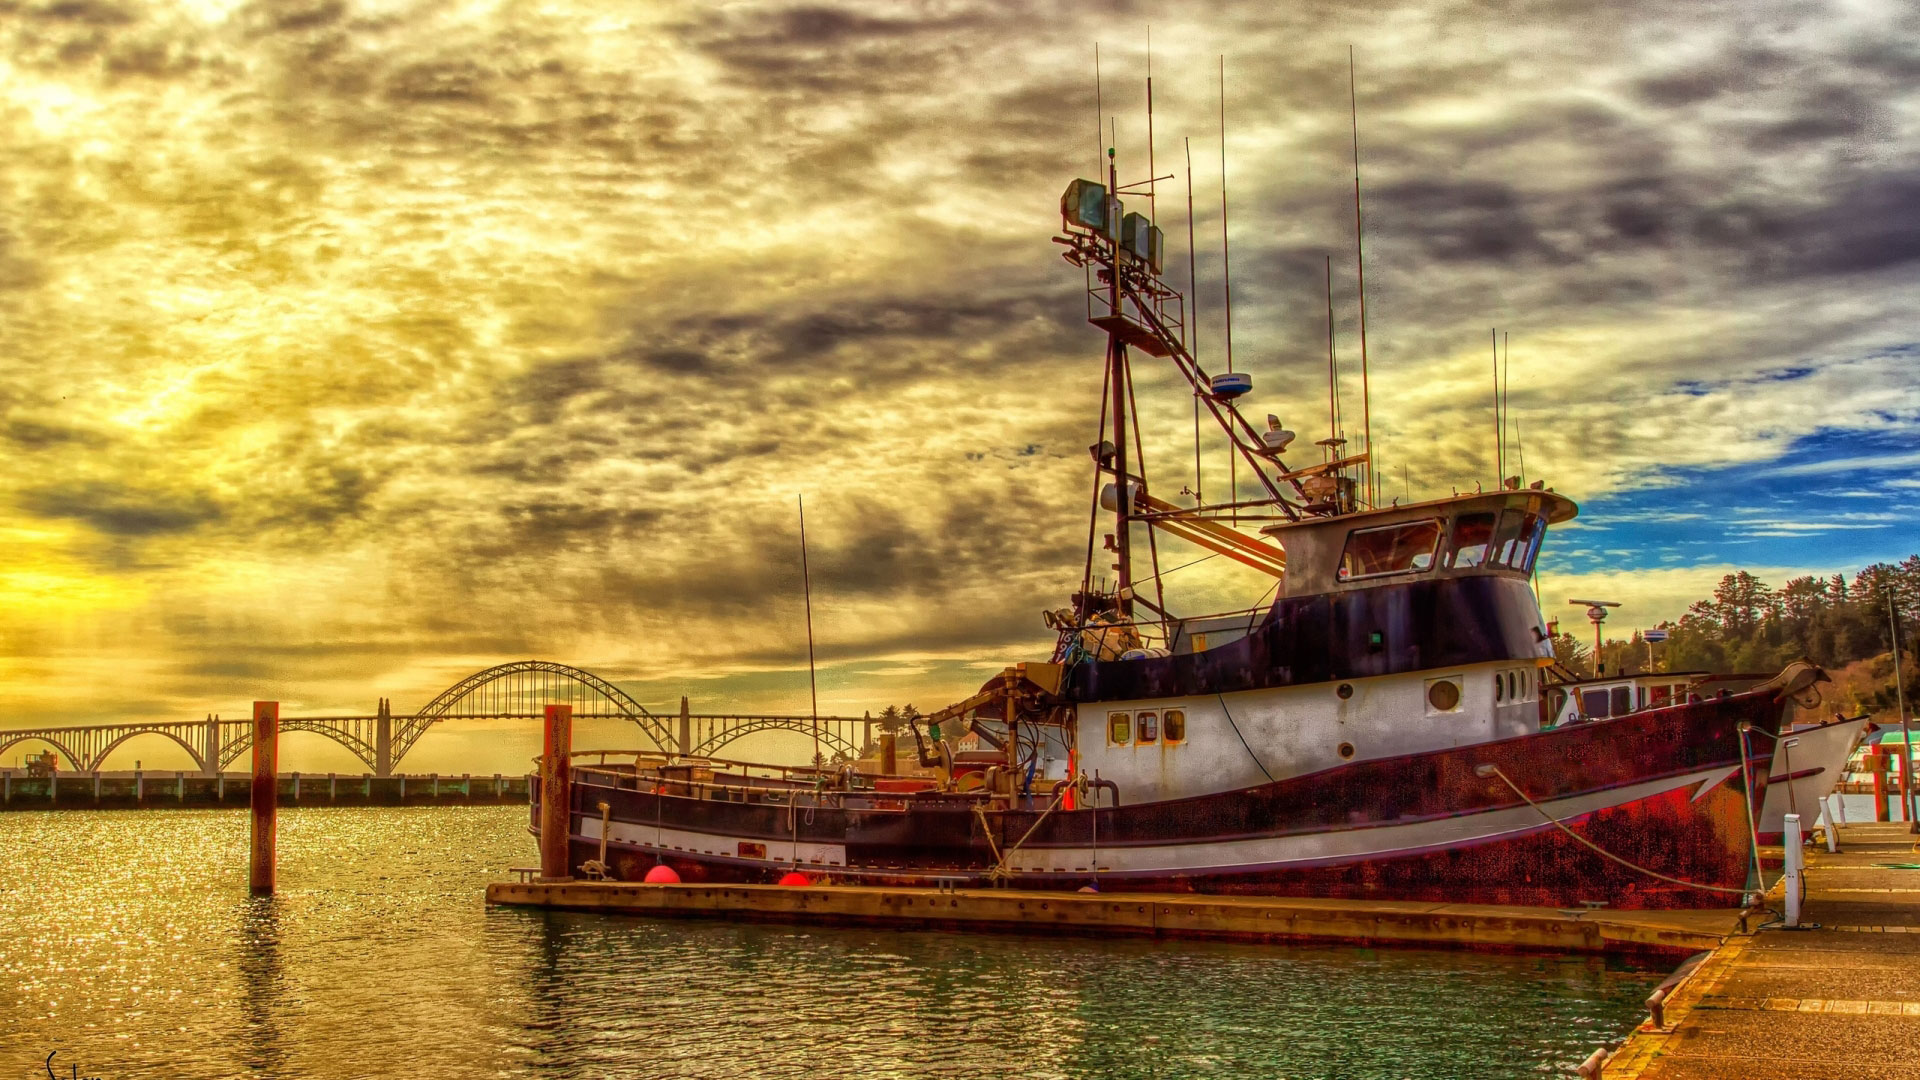 fishing-boat-docked-under-beautiful-sky-hdr-329598_chSM